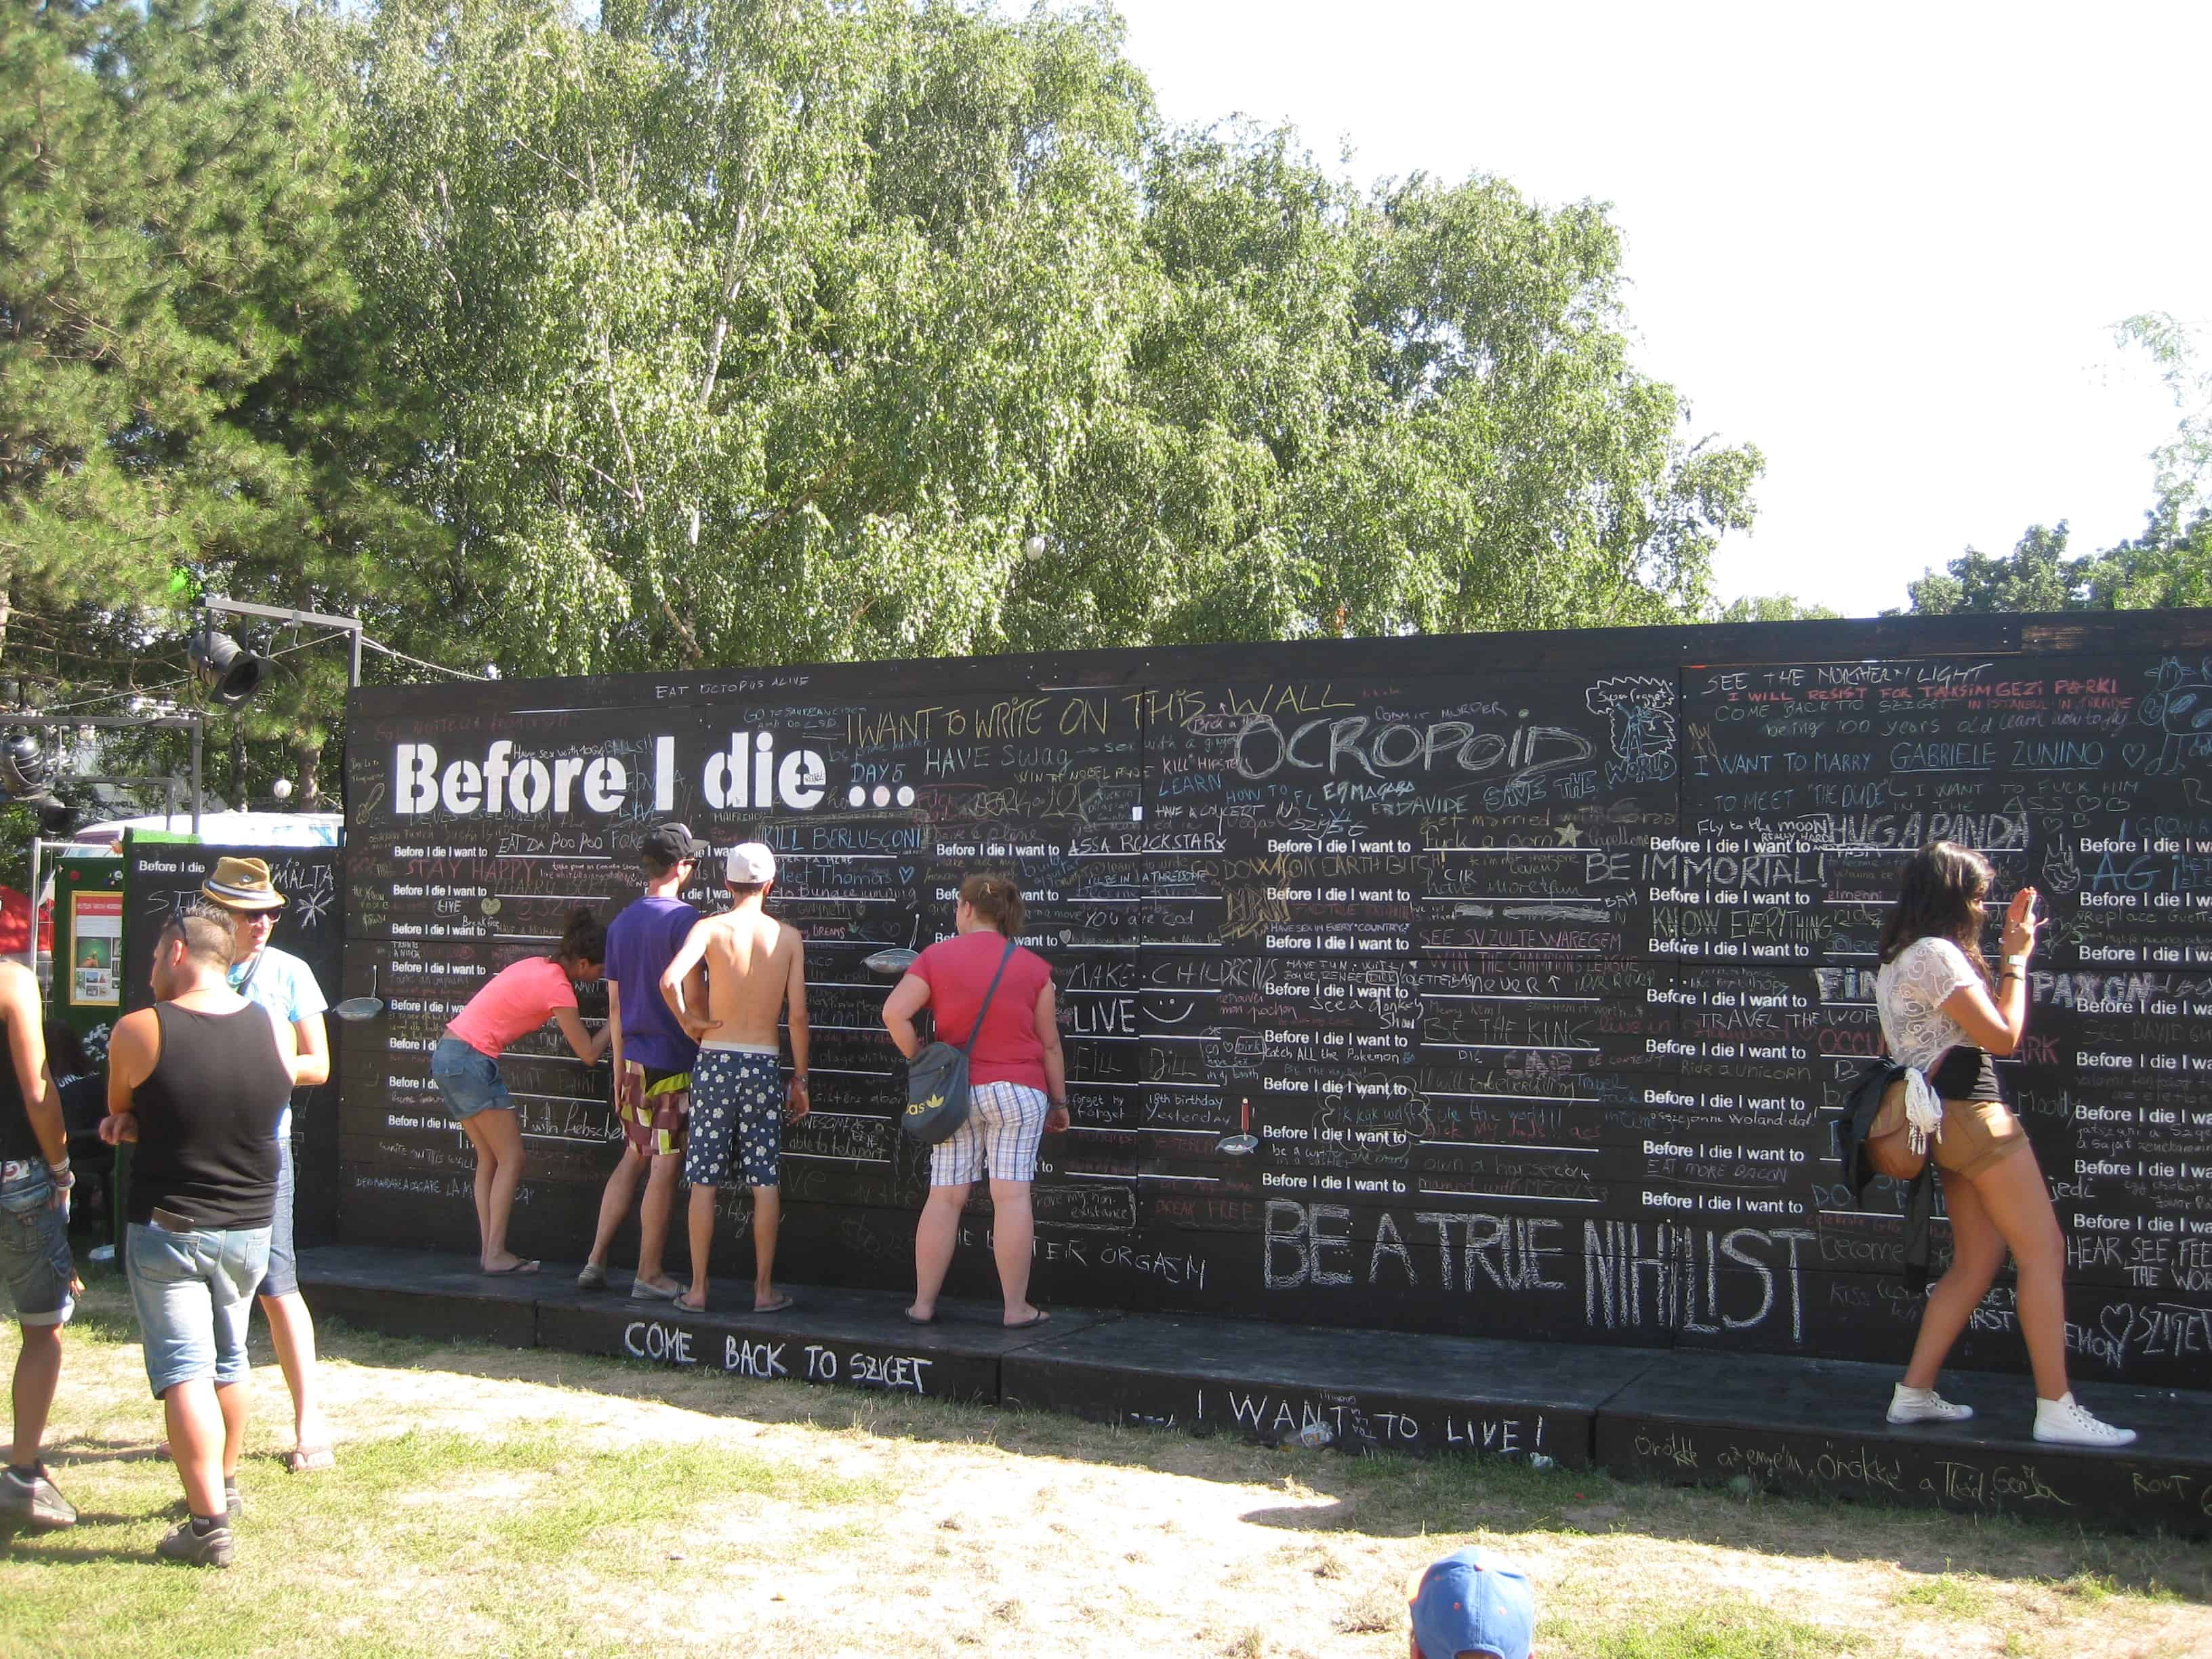 Sziget Festival Before I Die Wall [ Live Review: Sziget Festival 2013 ...: www.soundspheremag.com/reviews/live/live-review-sziget-festival...